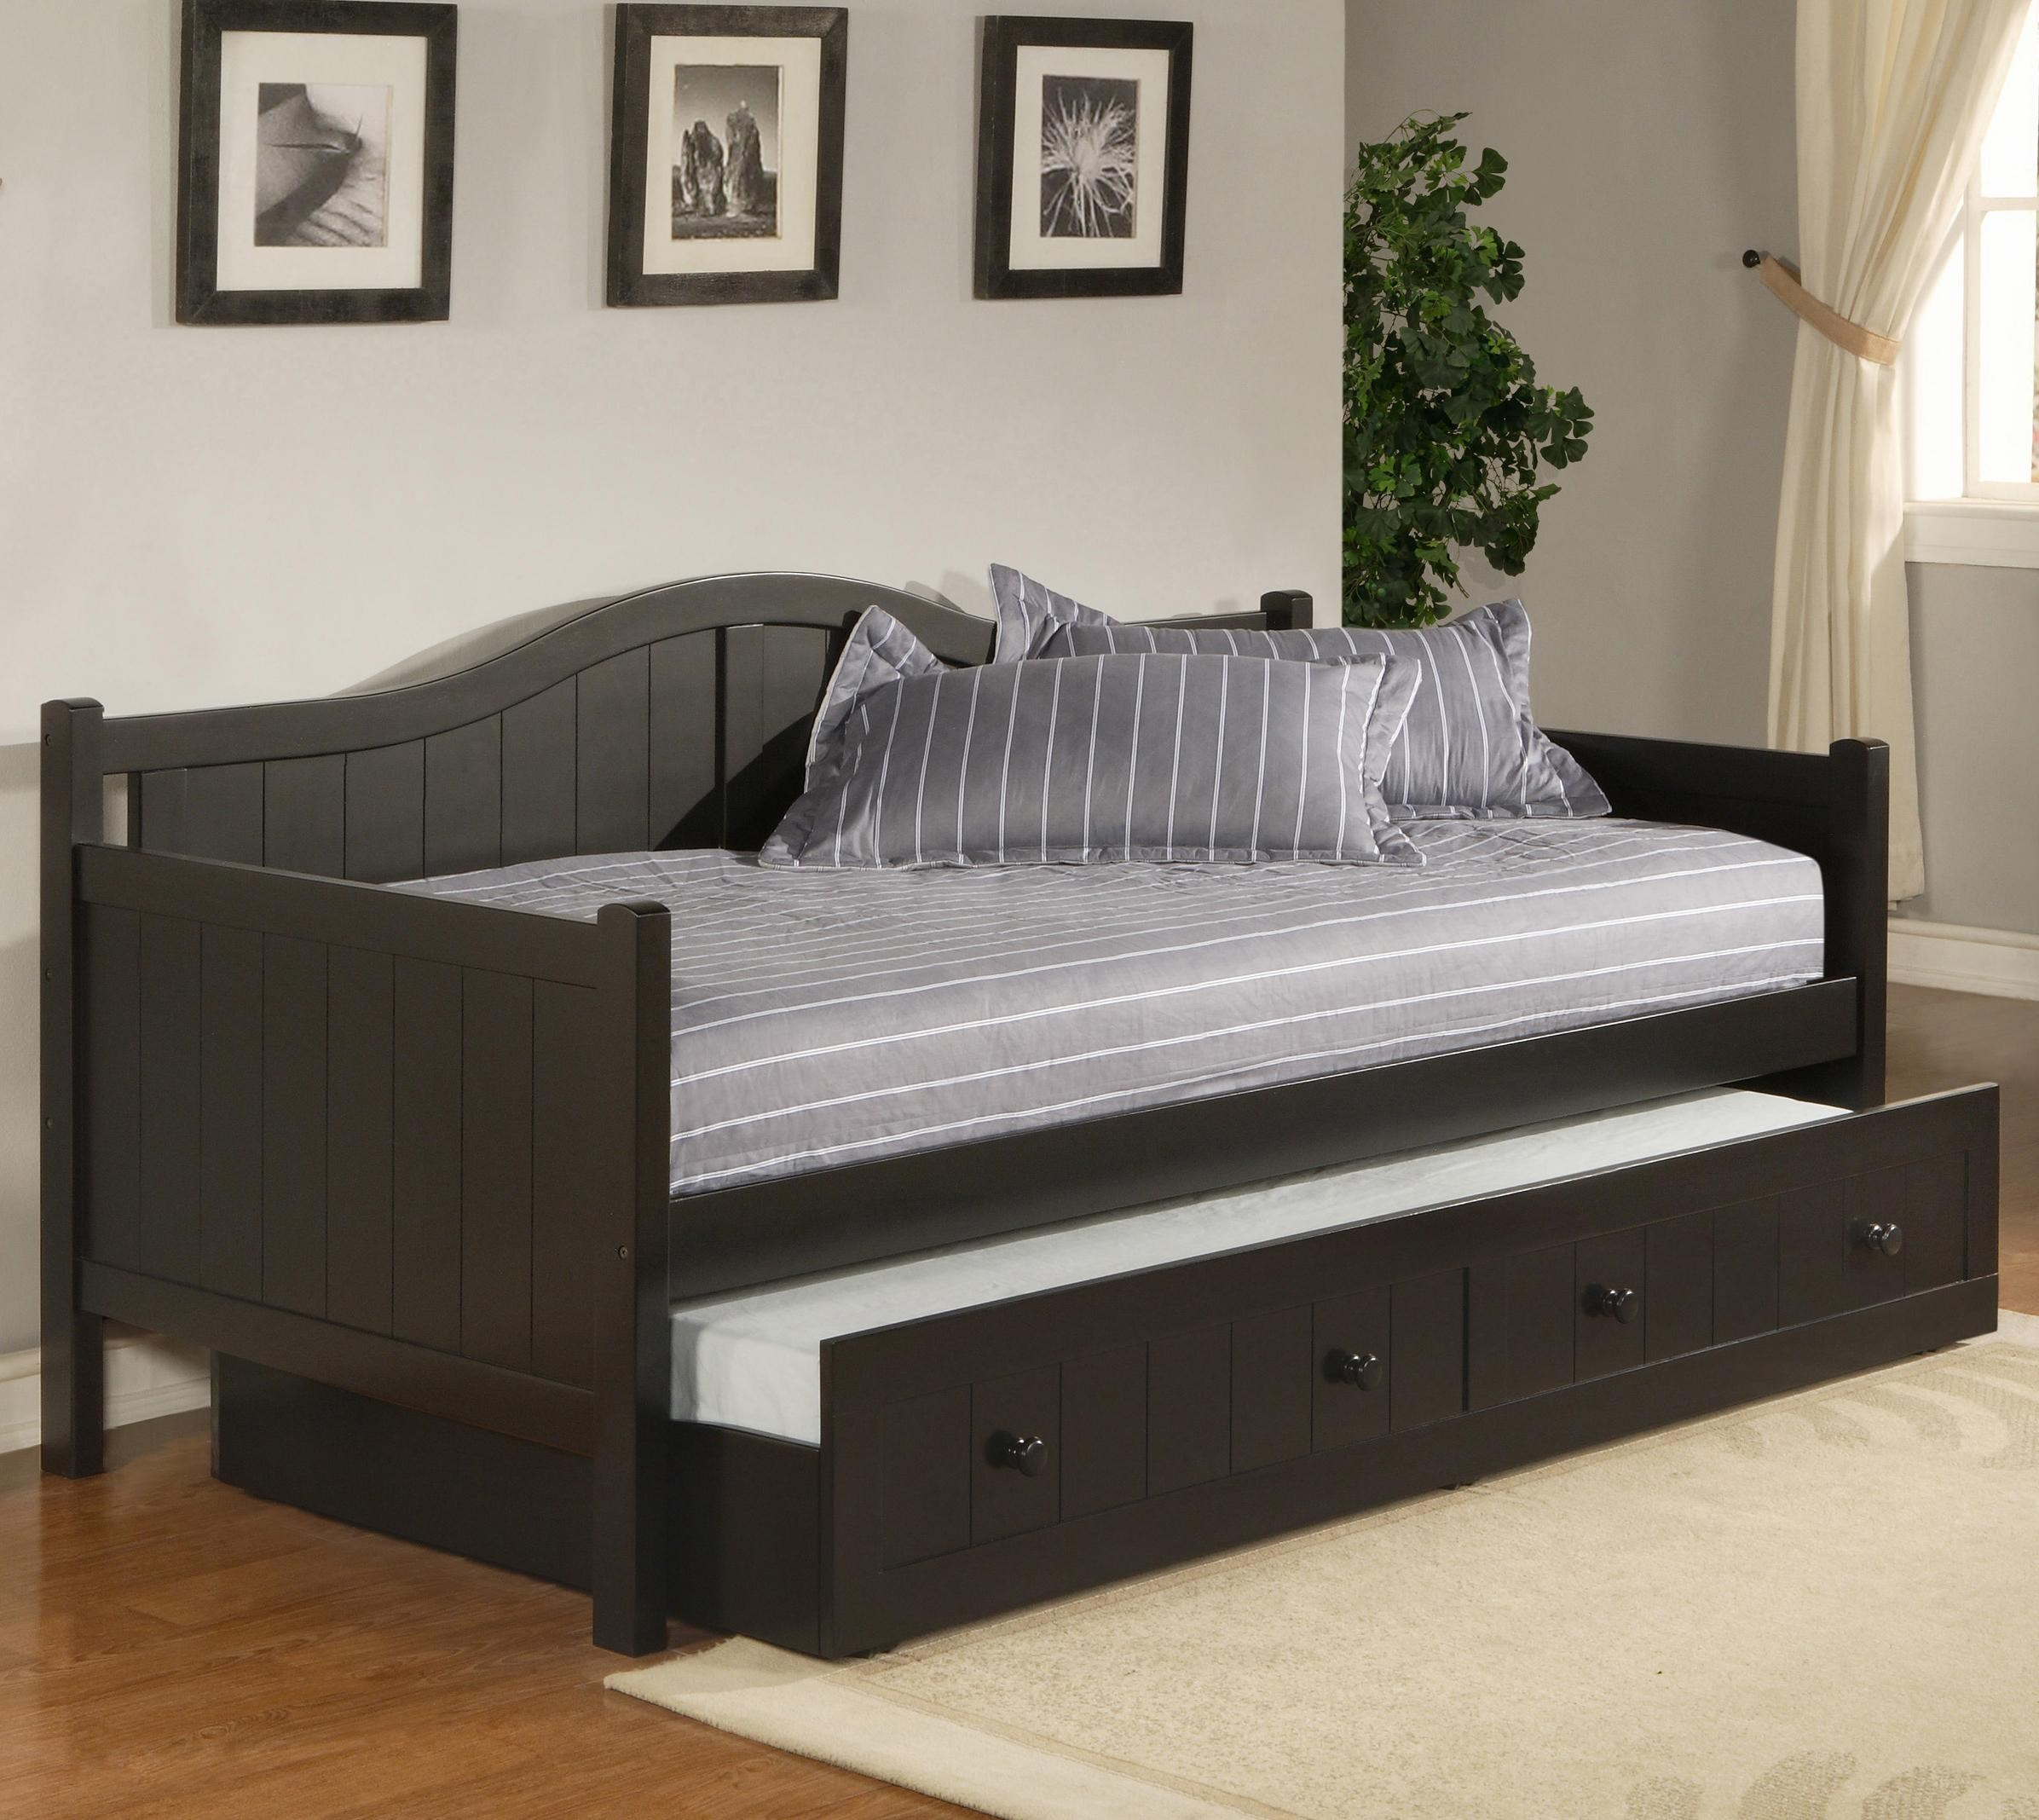 boy trundle bed daybeds staci daybed with trundle rotmans daybeds 10914